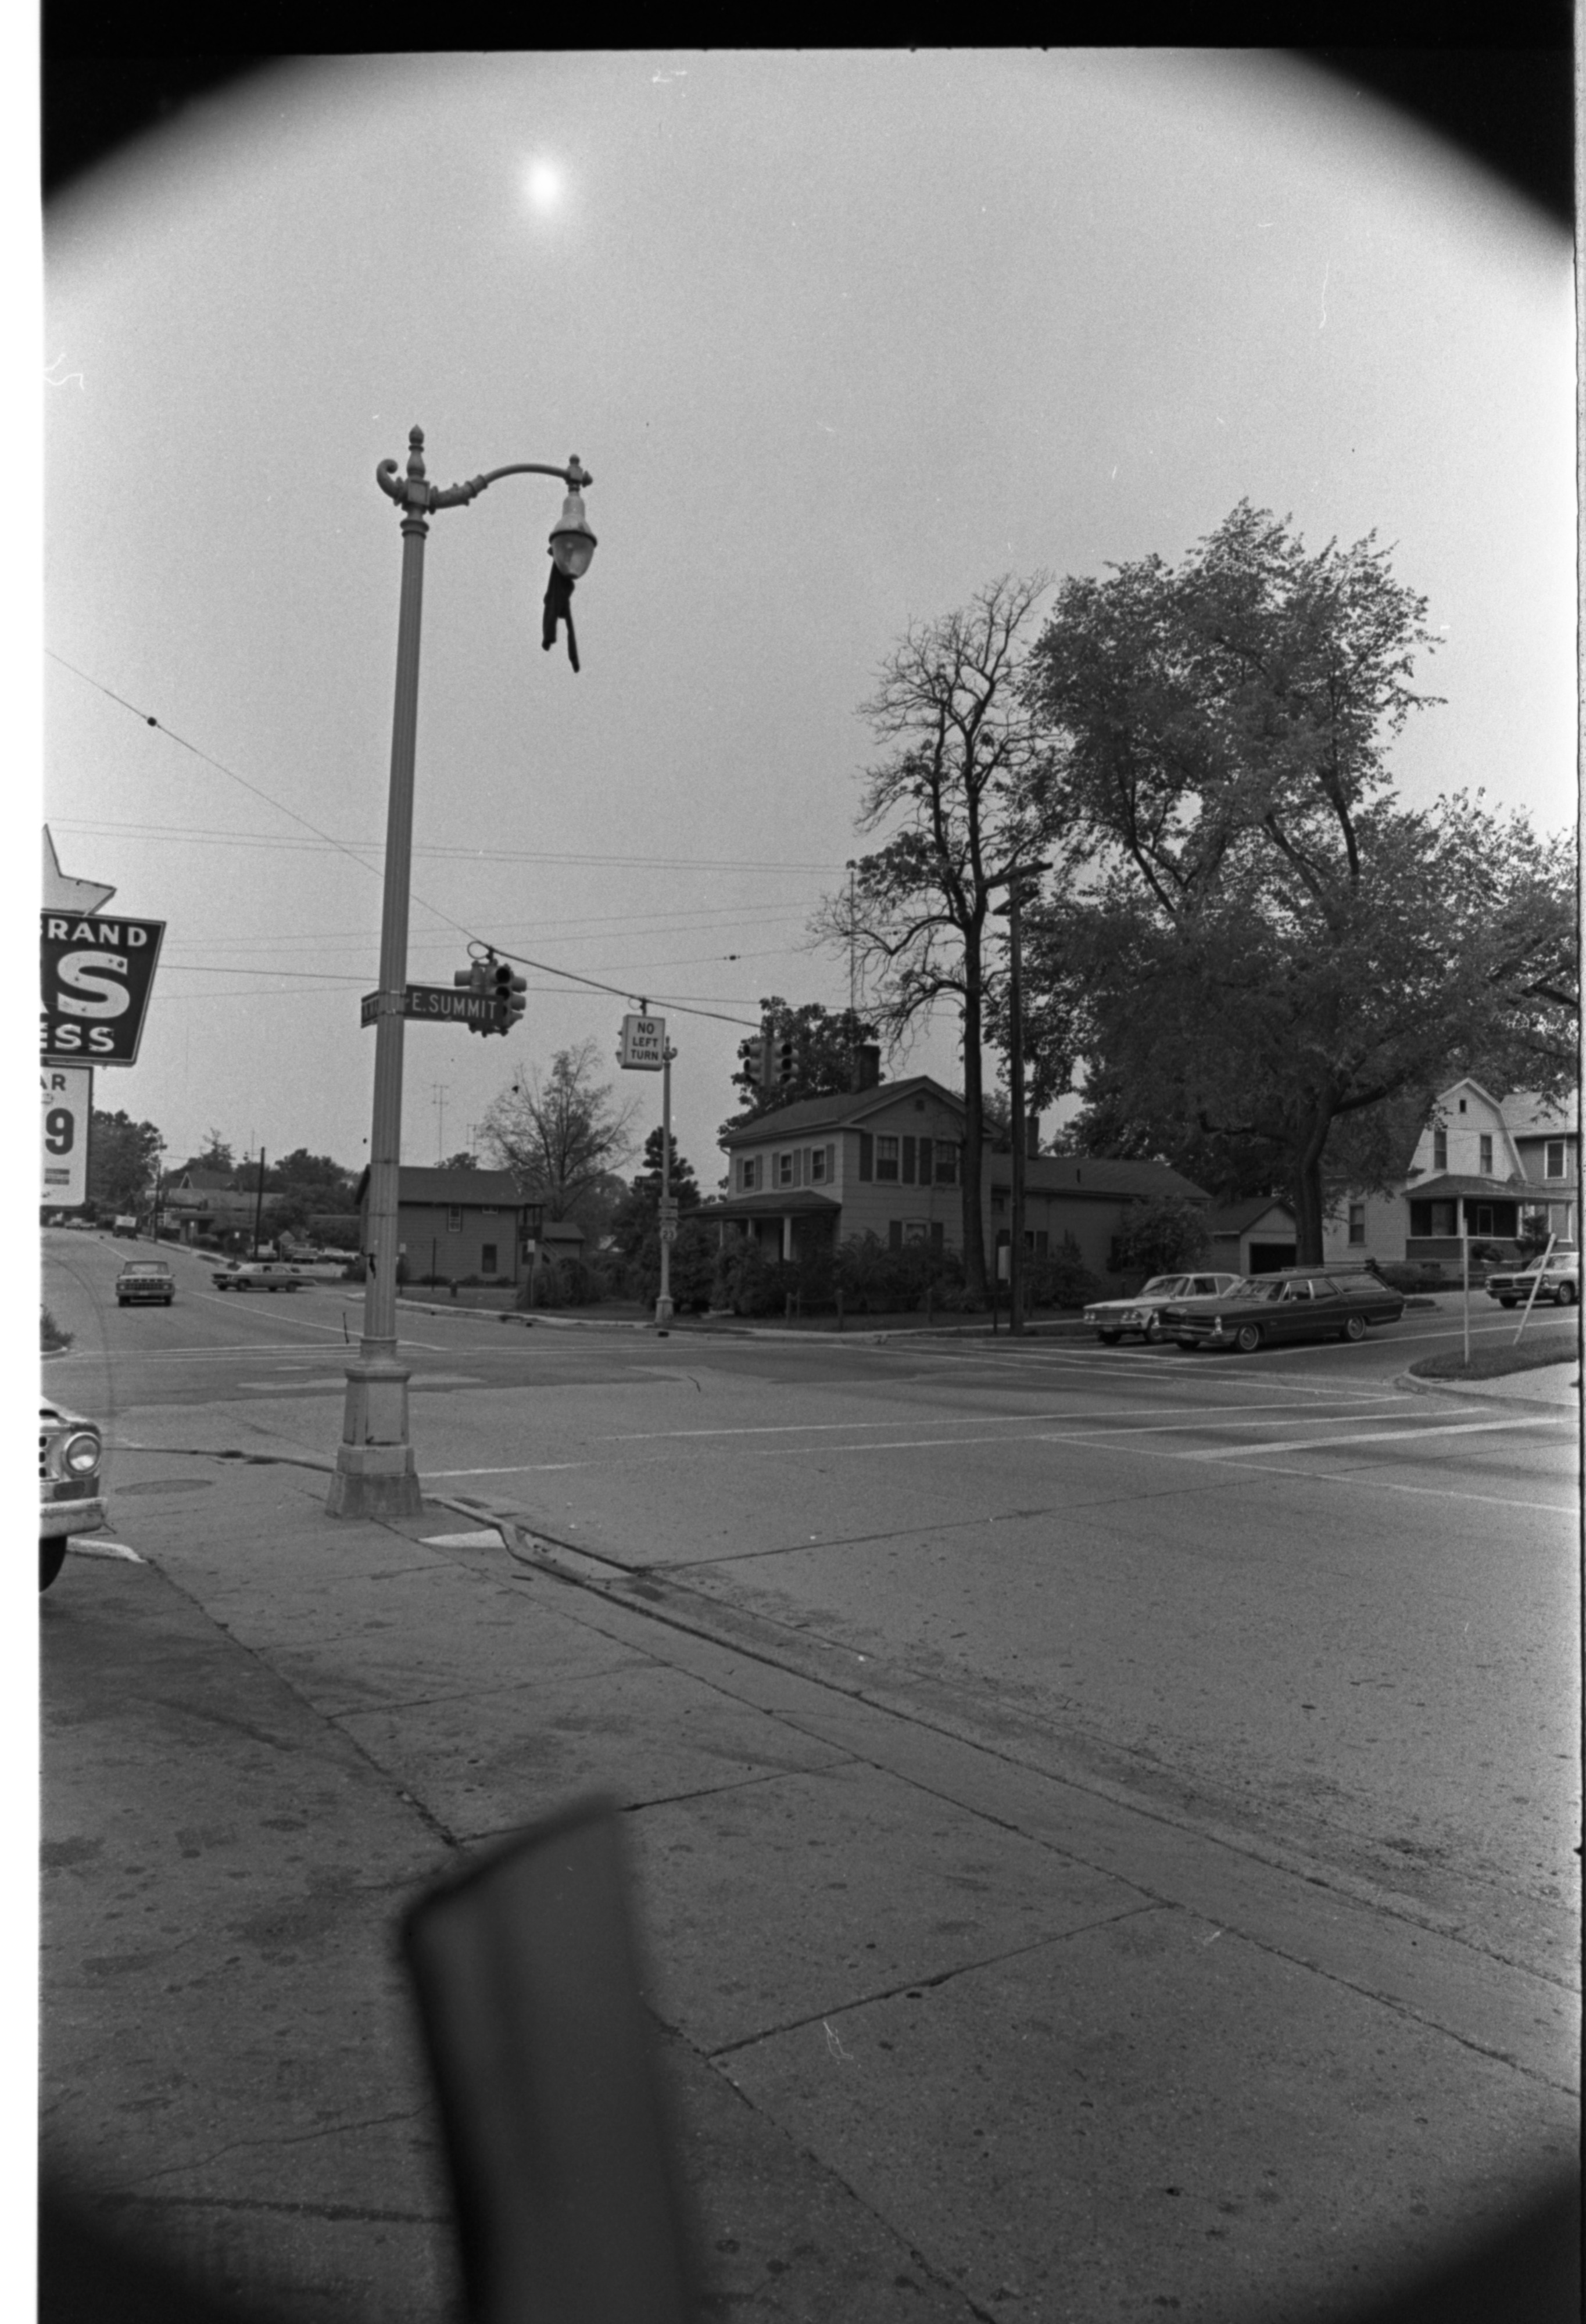 Pants Mysteriously Strung From Light Post, October 1970 image